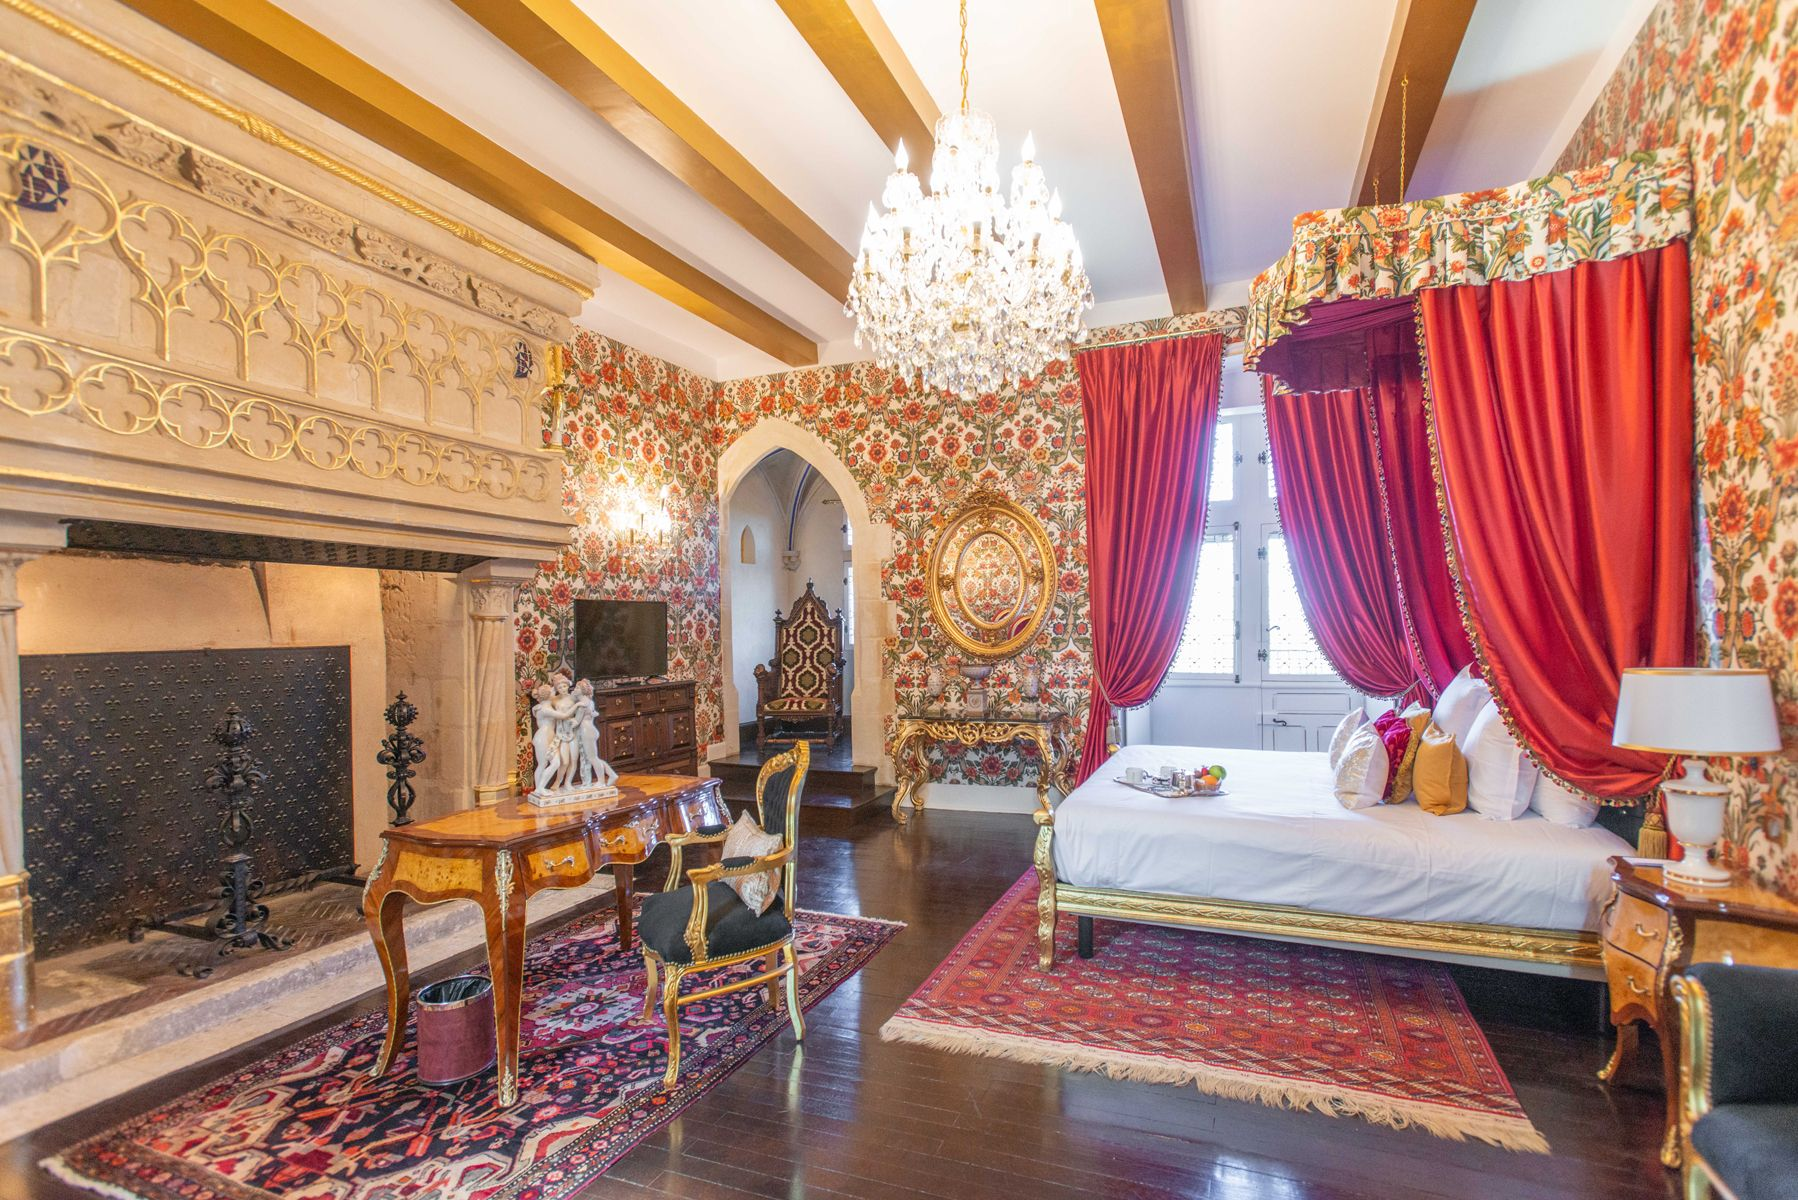 279/Chateau_le_Prieure/Chambres/chambre_deluxe.jpg